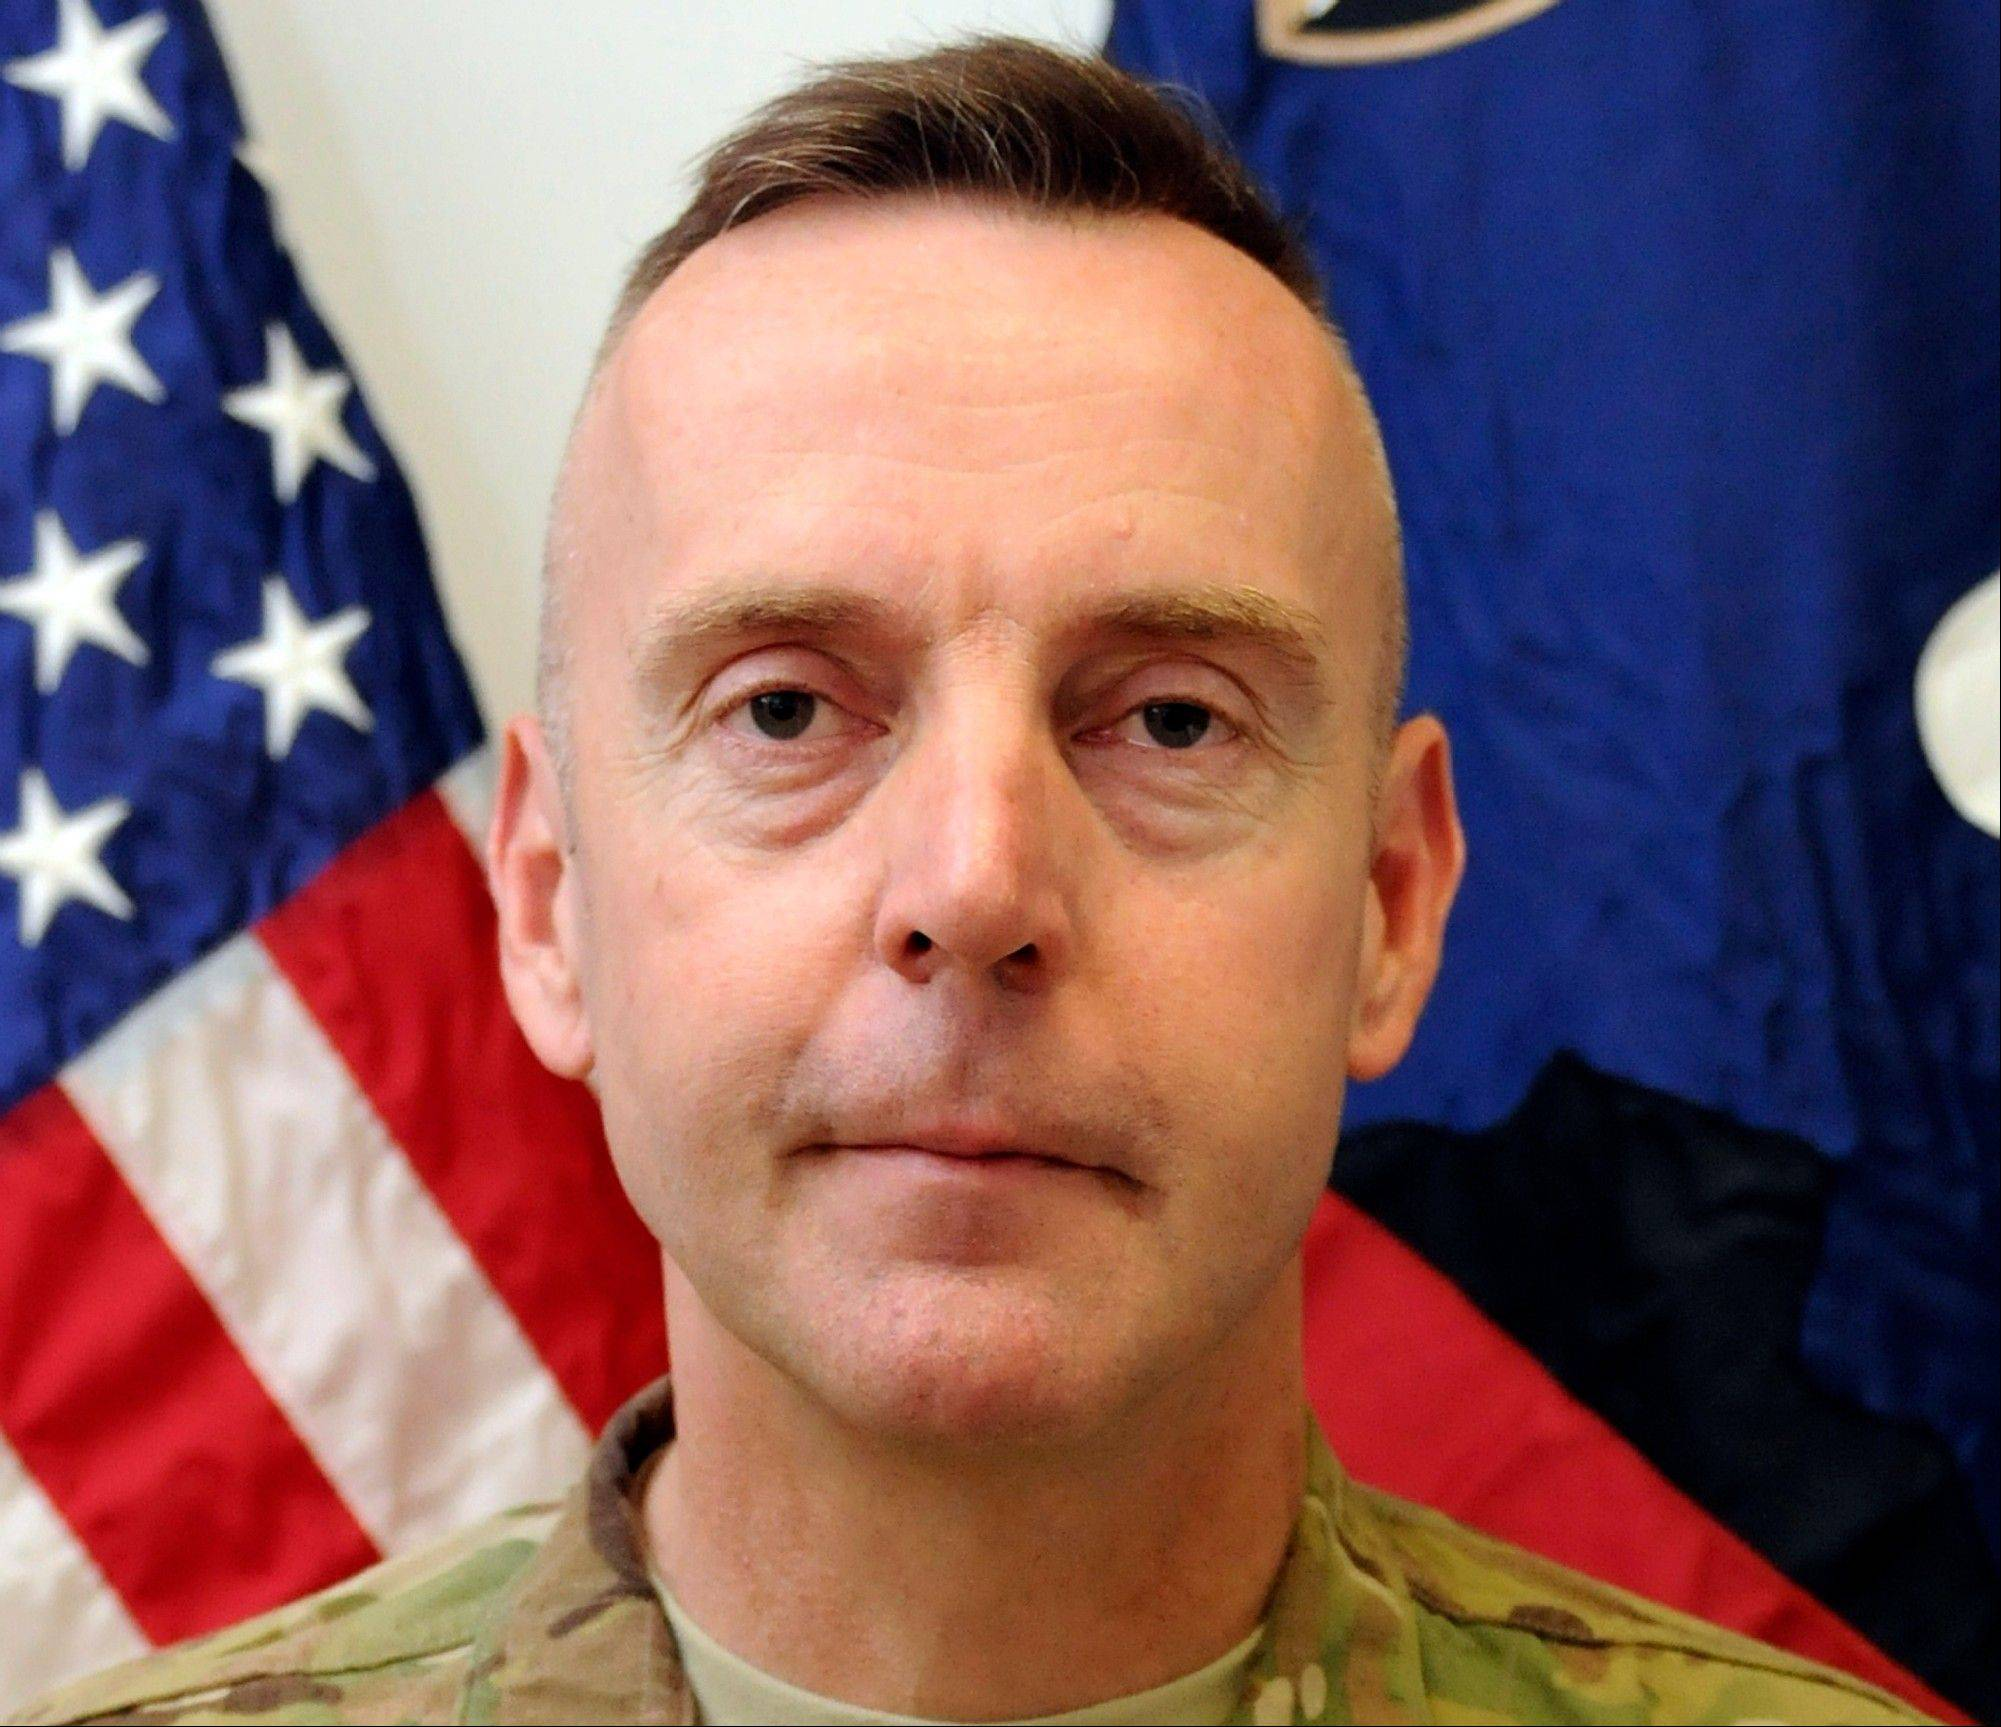 This undated file photo provided by the U.S. Army shows Brig. Gen. Jeffrey A. Sinclair. Sinclair, fired from his command in Afghanistan in May 2012 and now facing a court-martial on charges of sodomy, adultery and pornography and more, is just one in a long line of commanders whose careers were ended because of possible sexual misconduct.